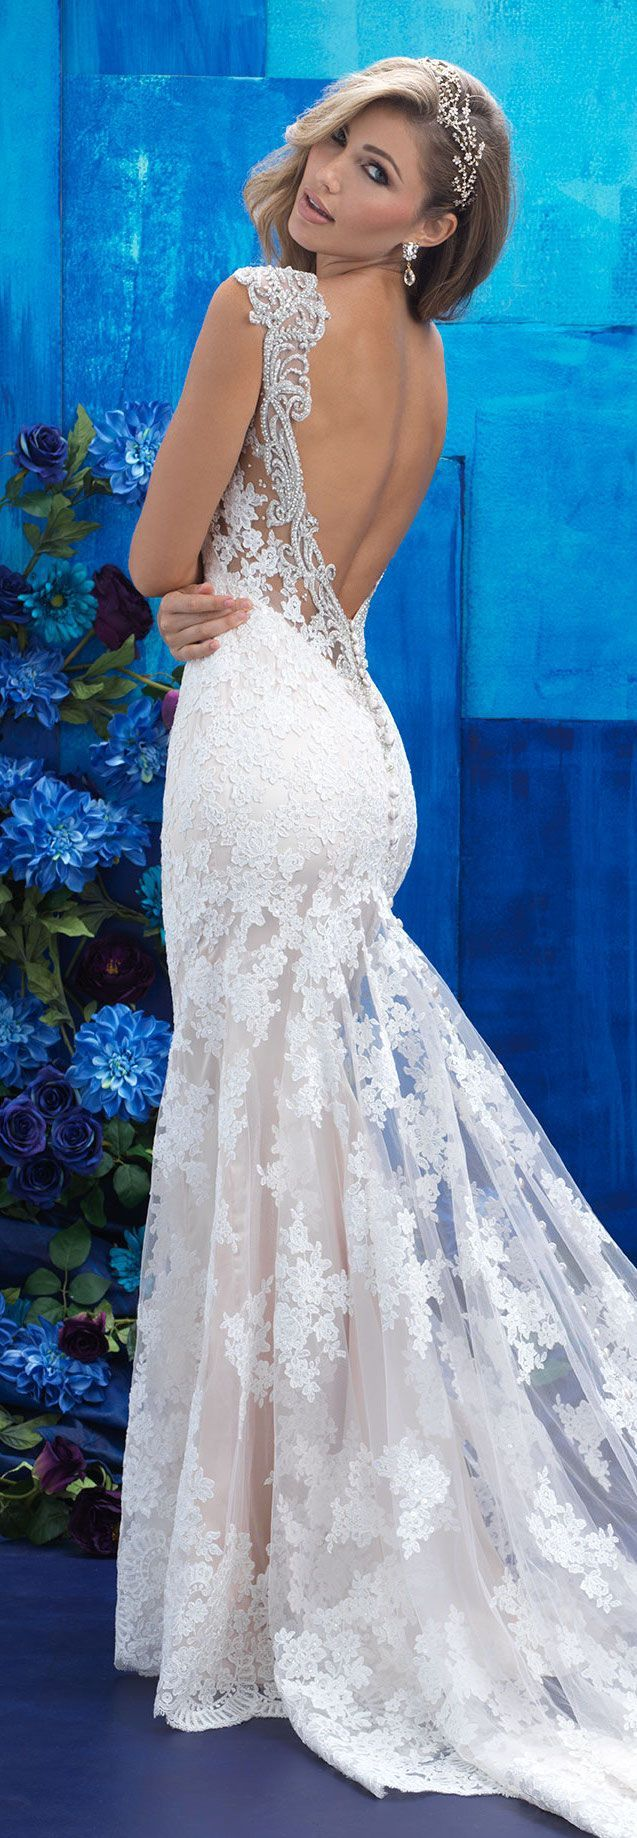 Lace Wedding Dress by Allure Bridals 2017 Collection | @allurebridals